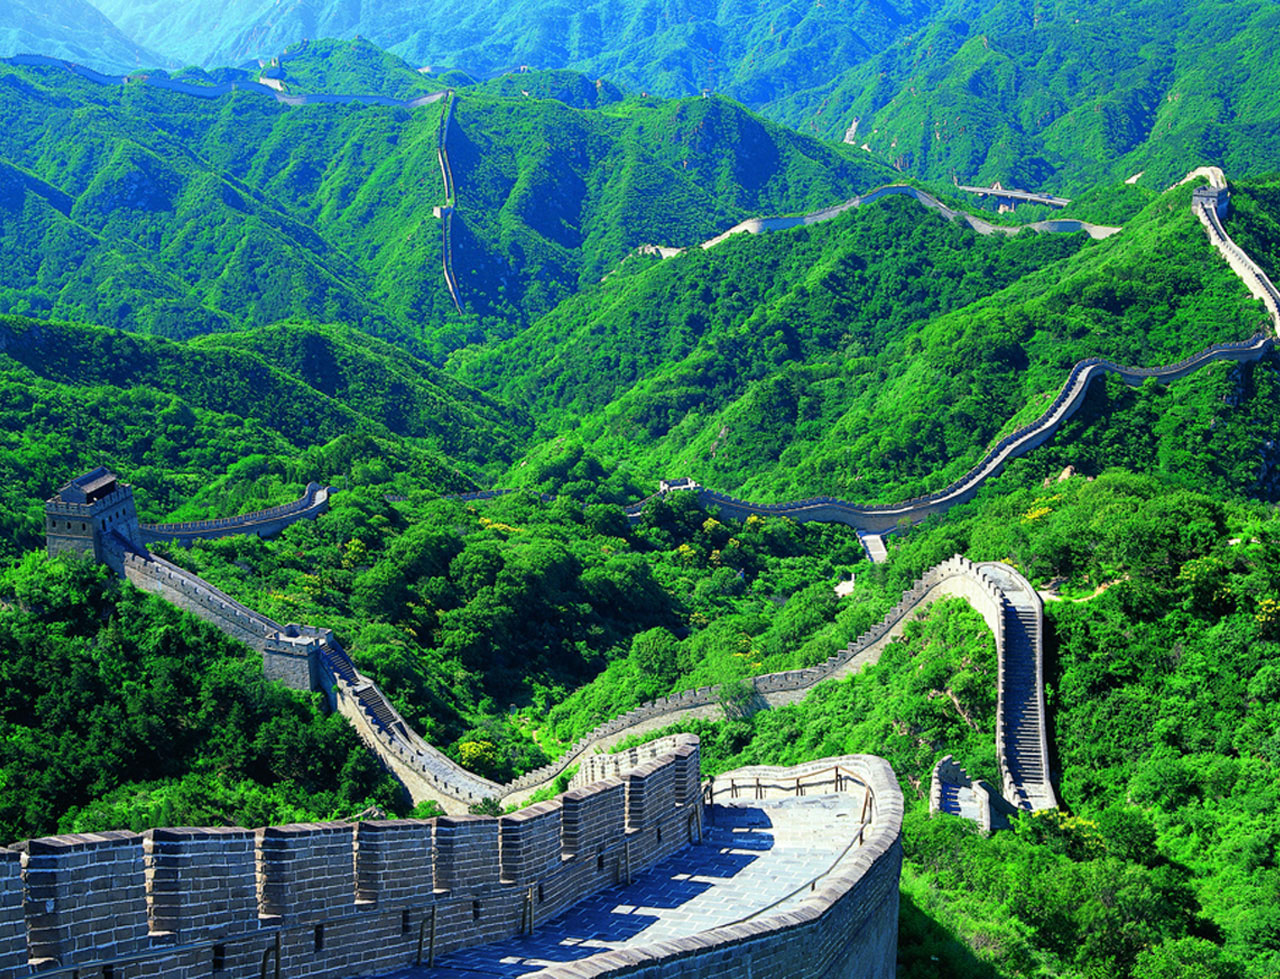 The View on a Great Wall in China 449.01 Kb